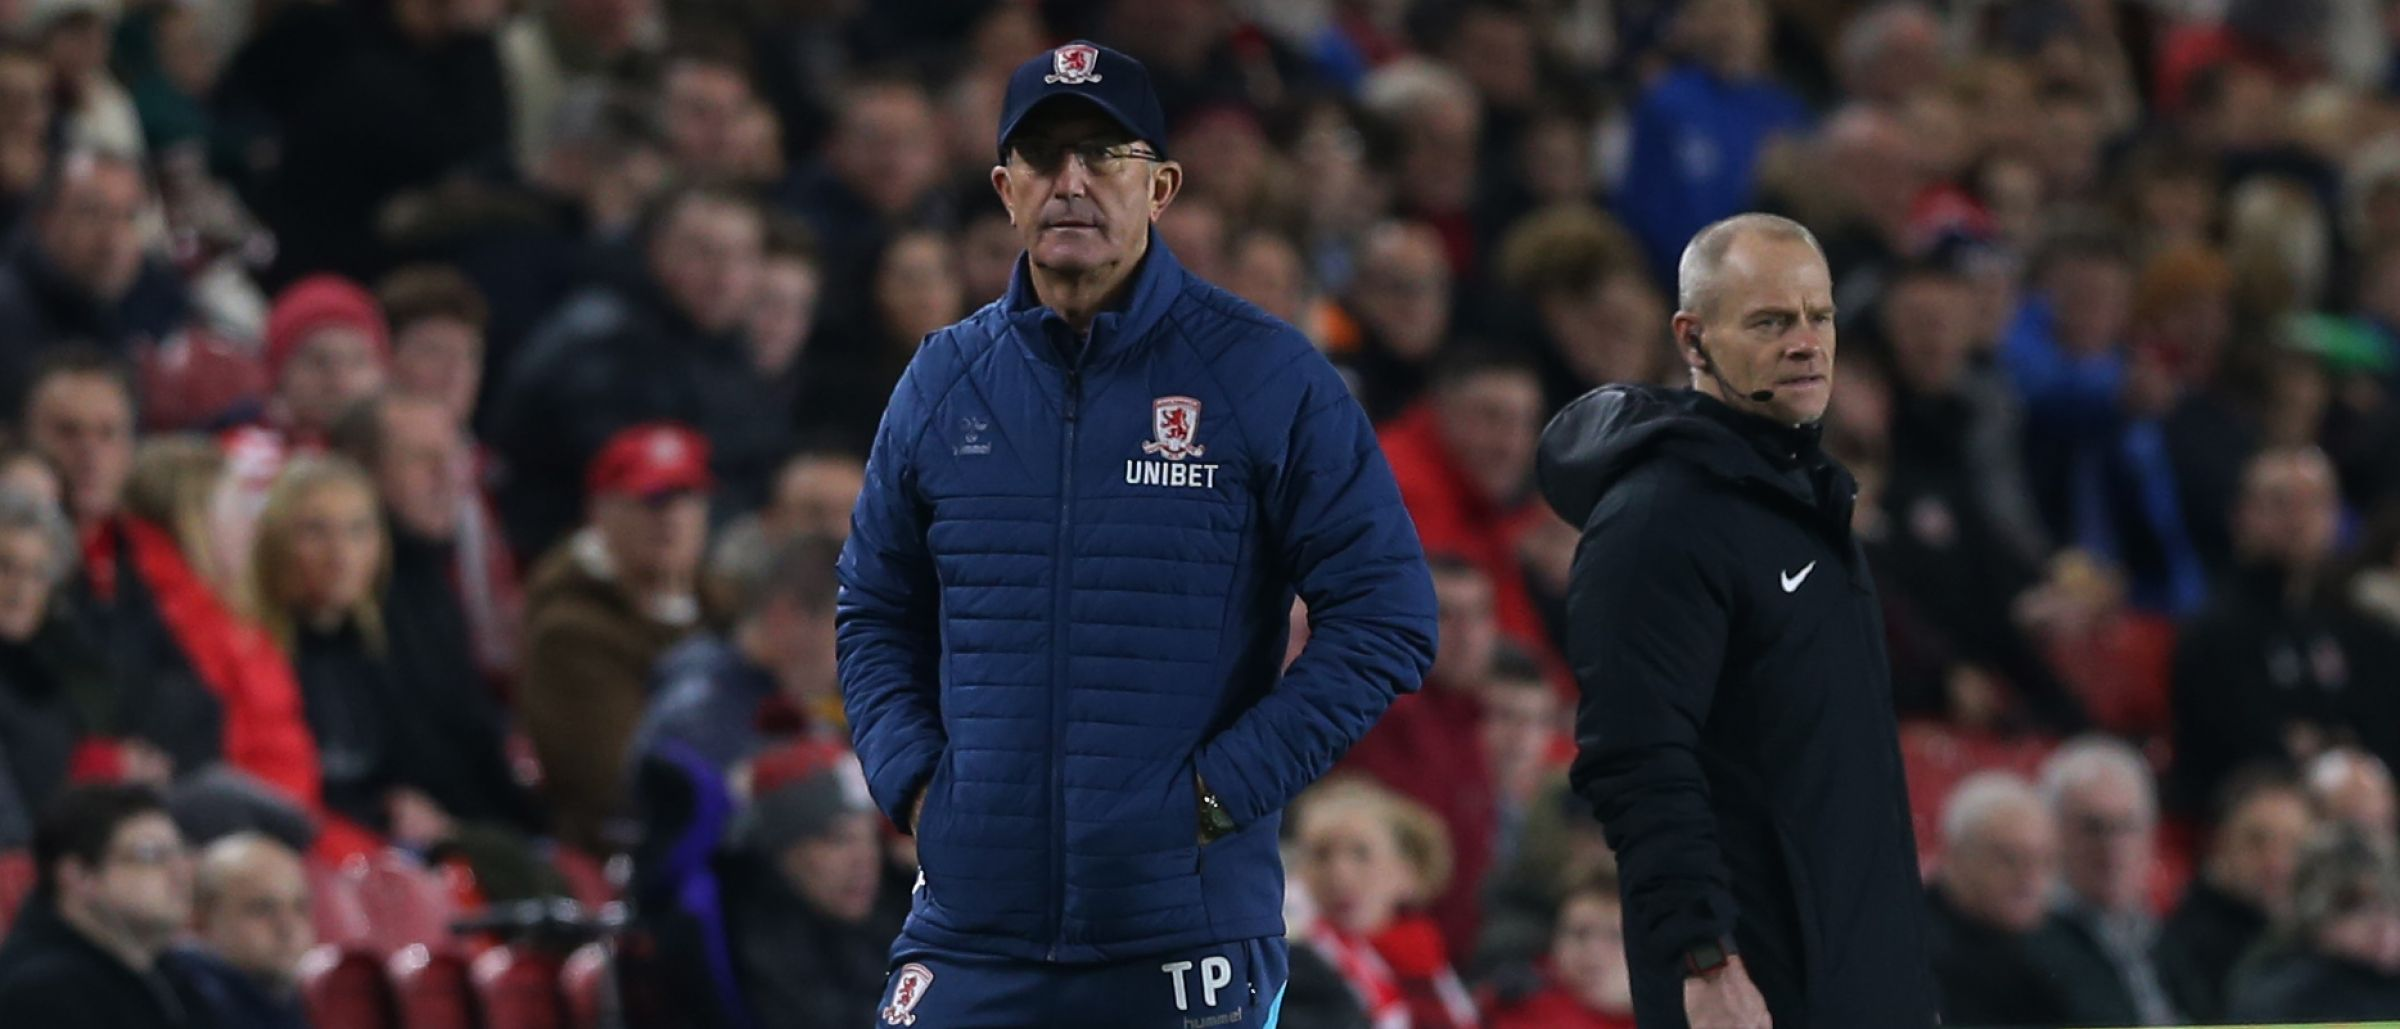 efc9e3750ae Tony Pulis admitted his Boro side were off the pace against Aston Villa  after losing for only the second time at the Riverside this season.